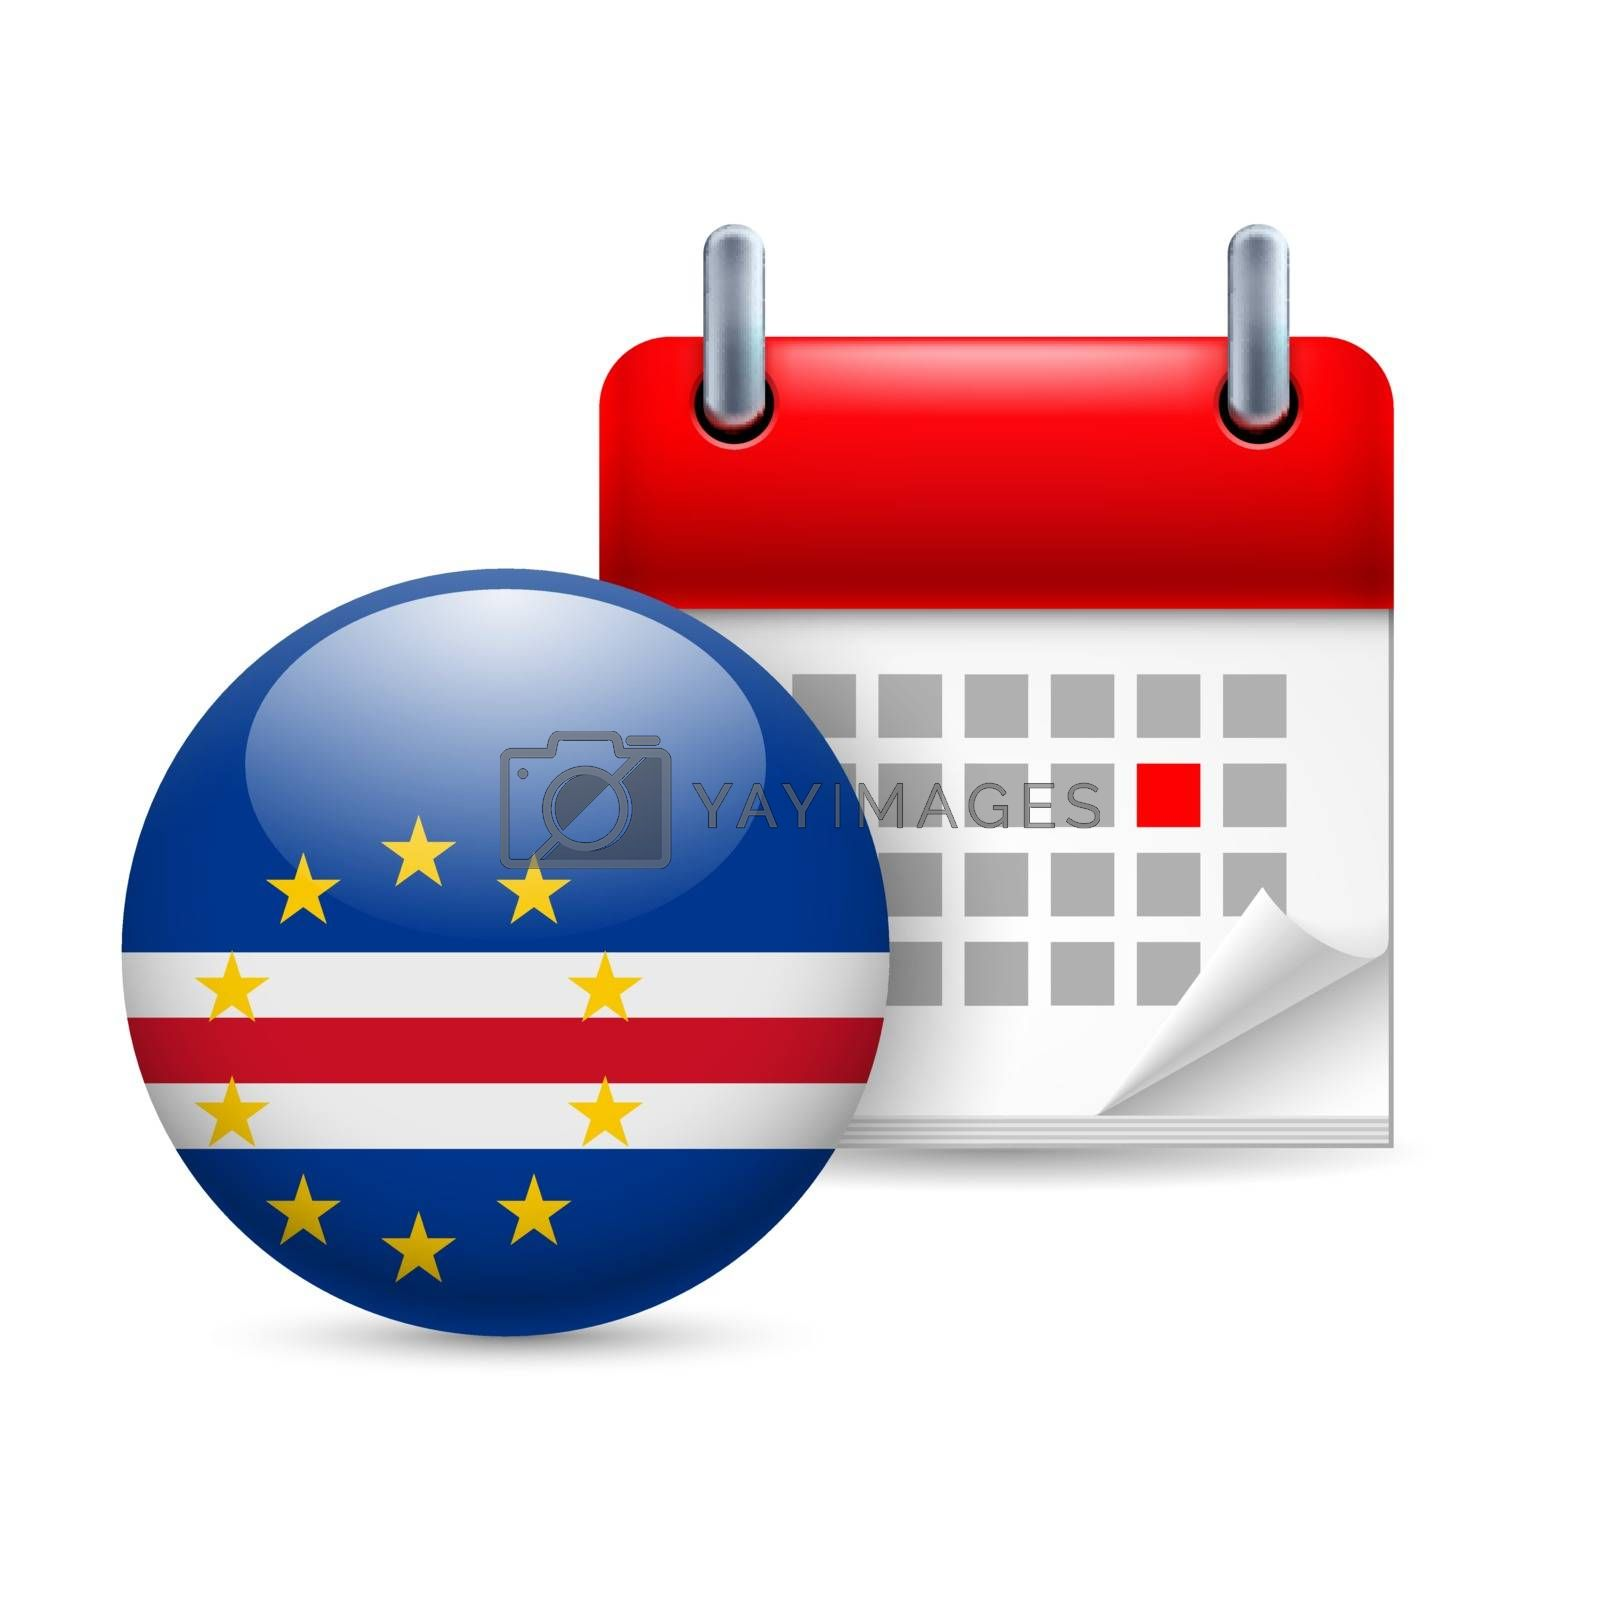 Royalty free image of Icon of National Day in Cape Verde by dvarg